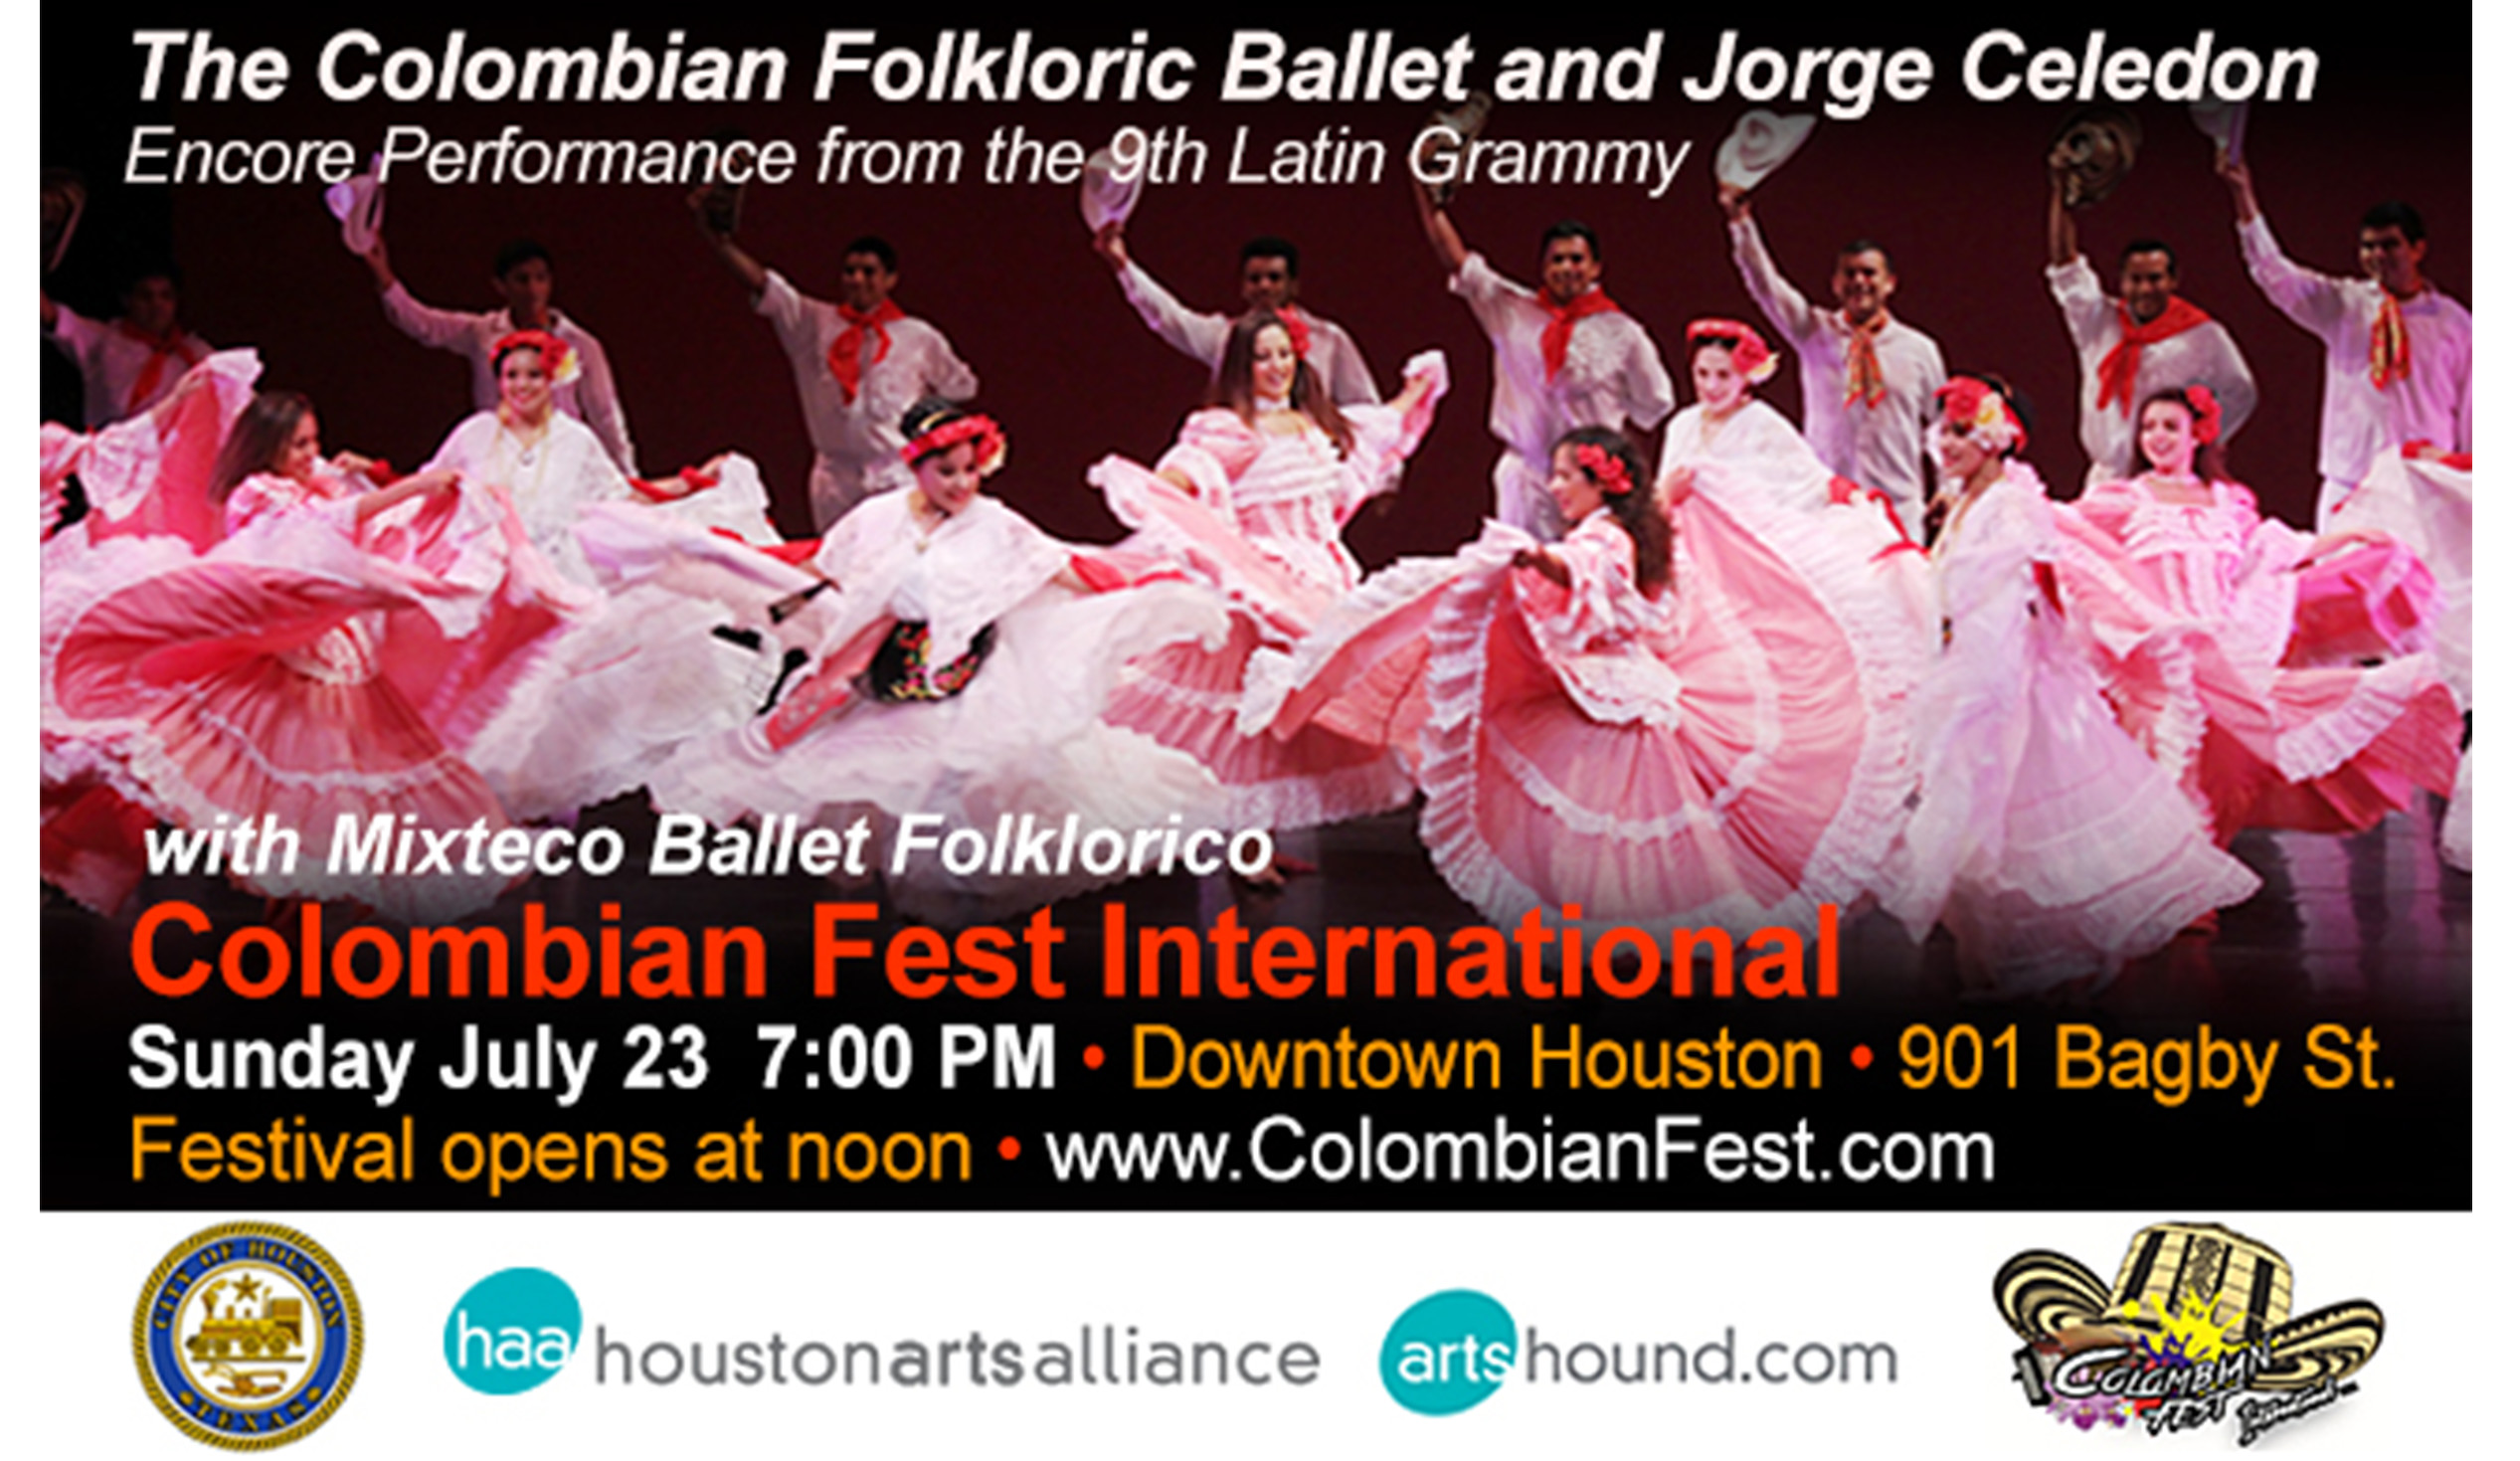 The Colombian Folkloric Ballet and Jorge Celedo. Latin Grammys. Colombian Fest International. Festival Colombiano International